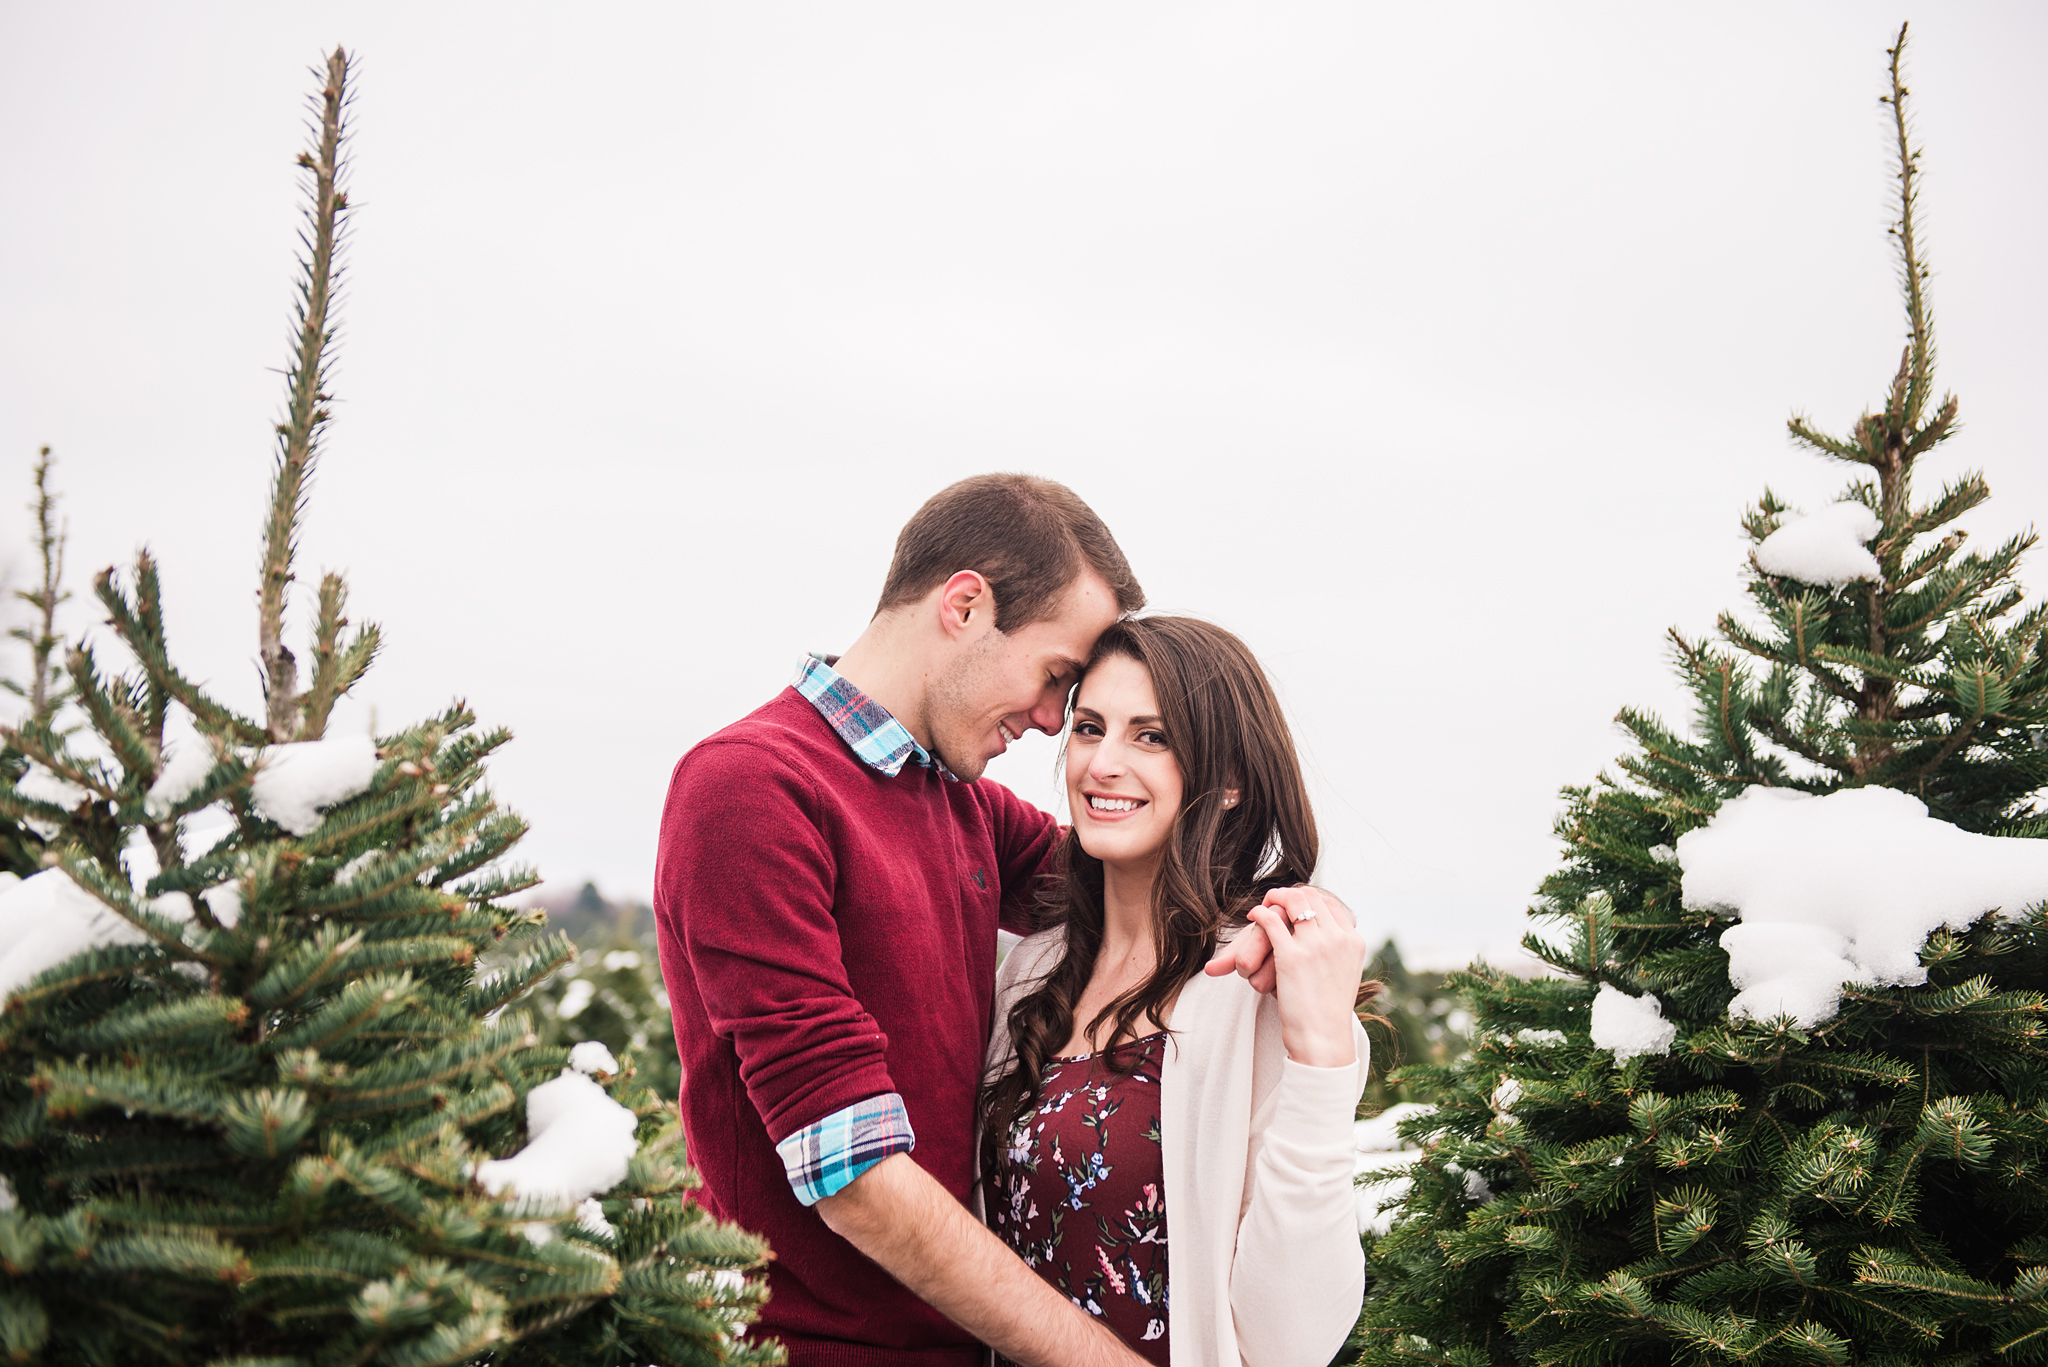 Woody_Acres_Rochester_Engagement_Session_JILL_STUDIO_Rochester_NY_Photographer_153112.jpg